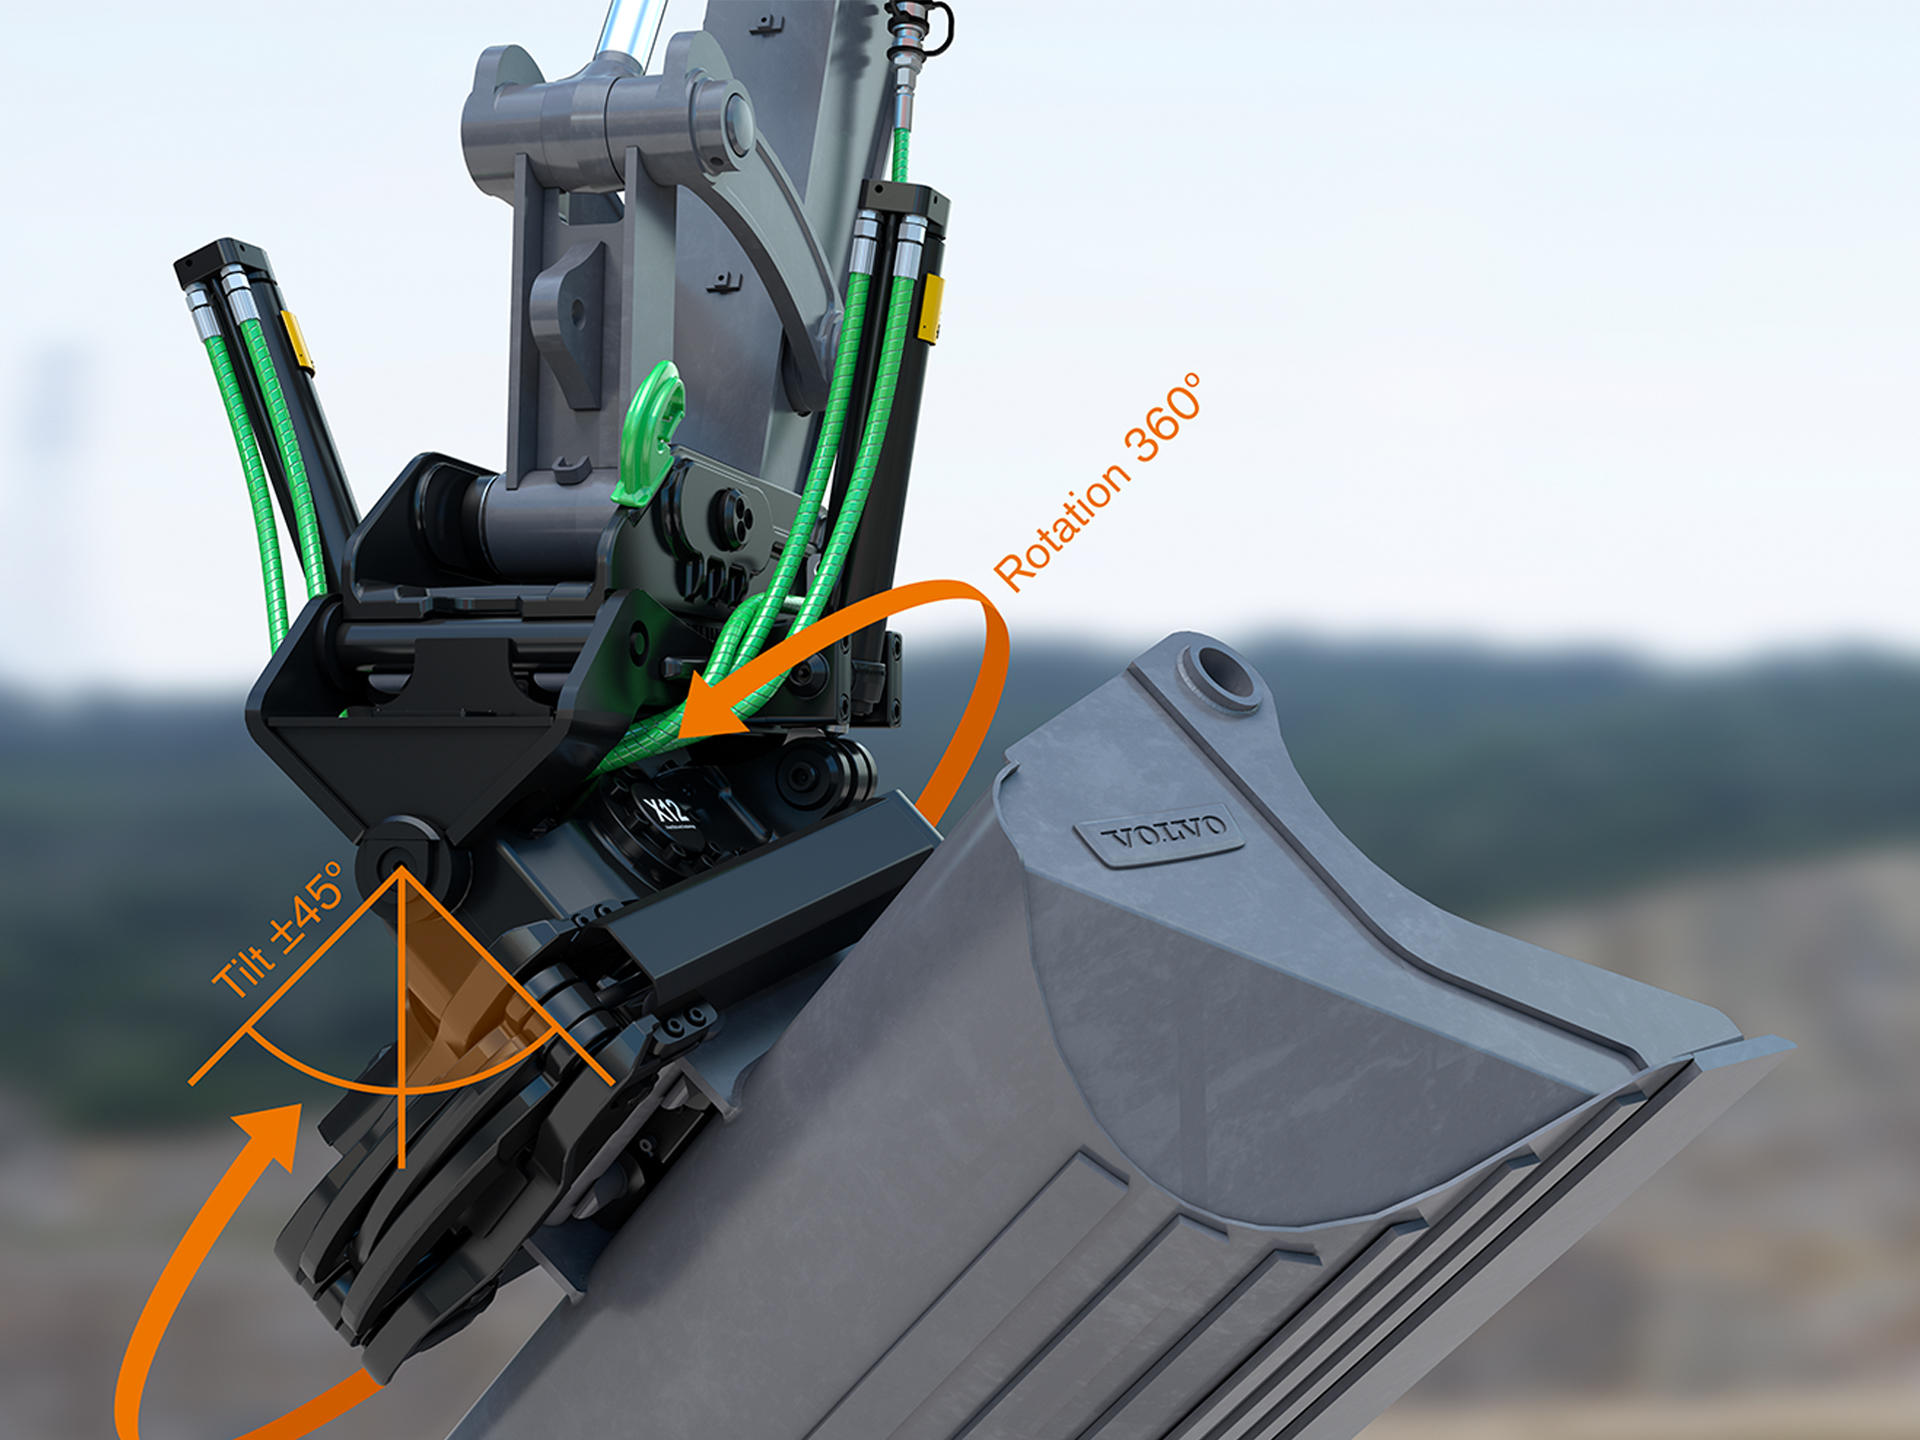 new-volvo-excavator-attachments-are-safe-and-versatile-01-1920